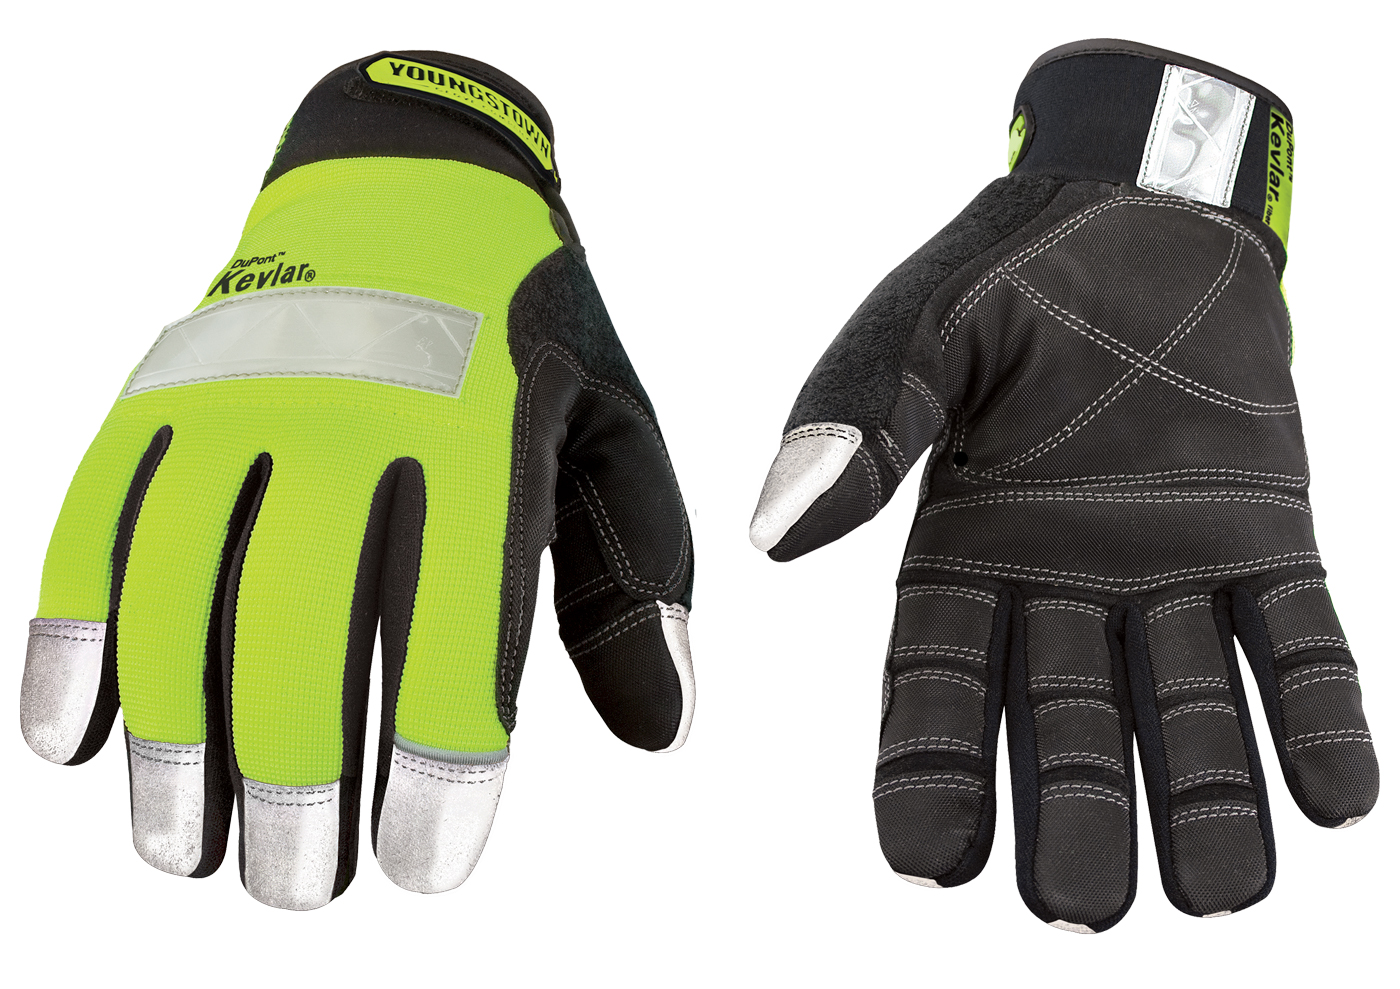 Youngstown Glove Safety Lime Glove Lined with Kevlar Medium